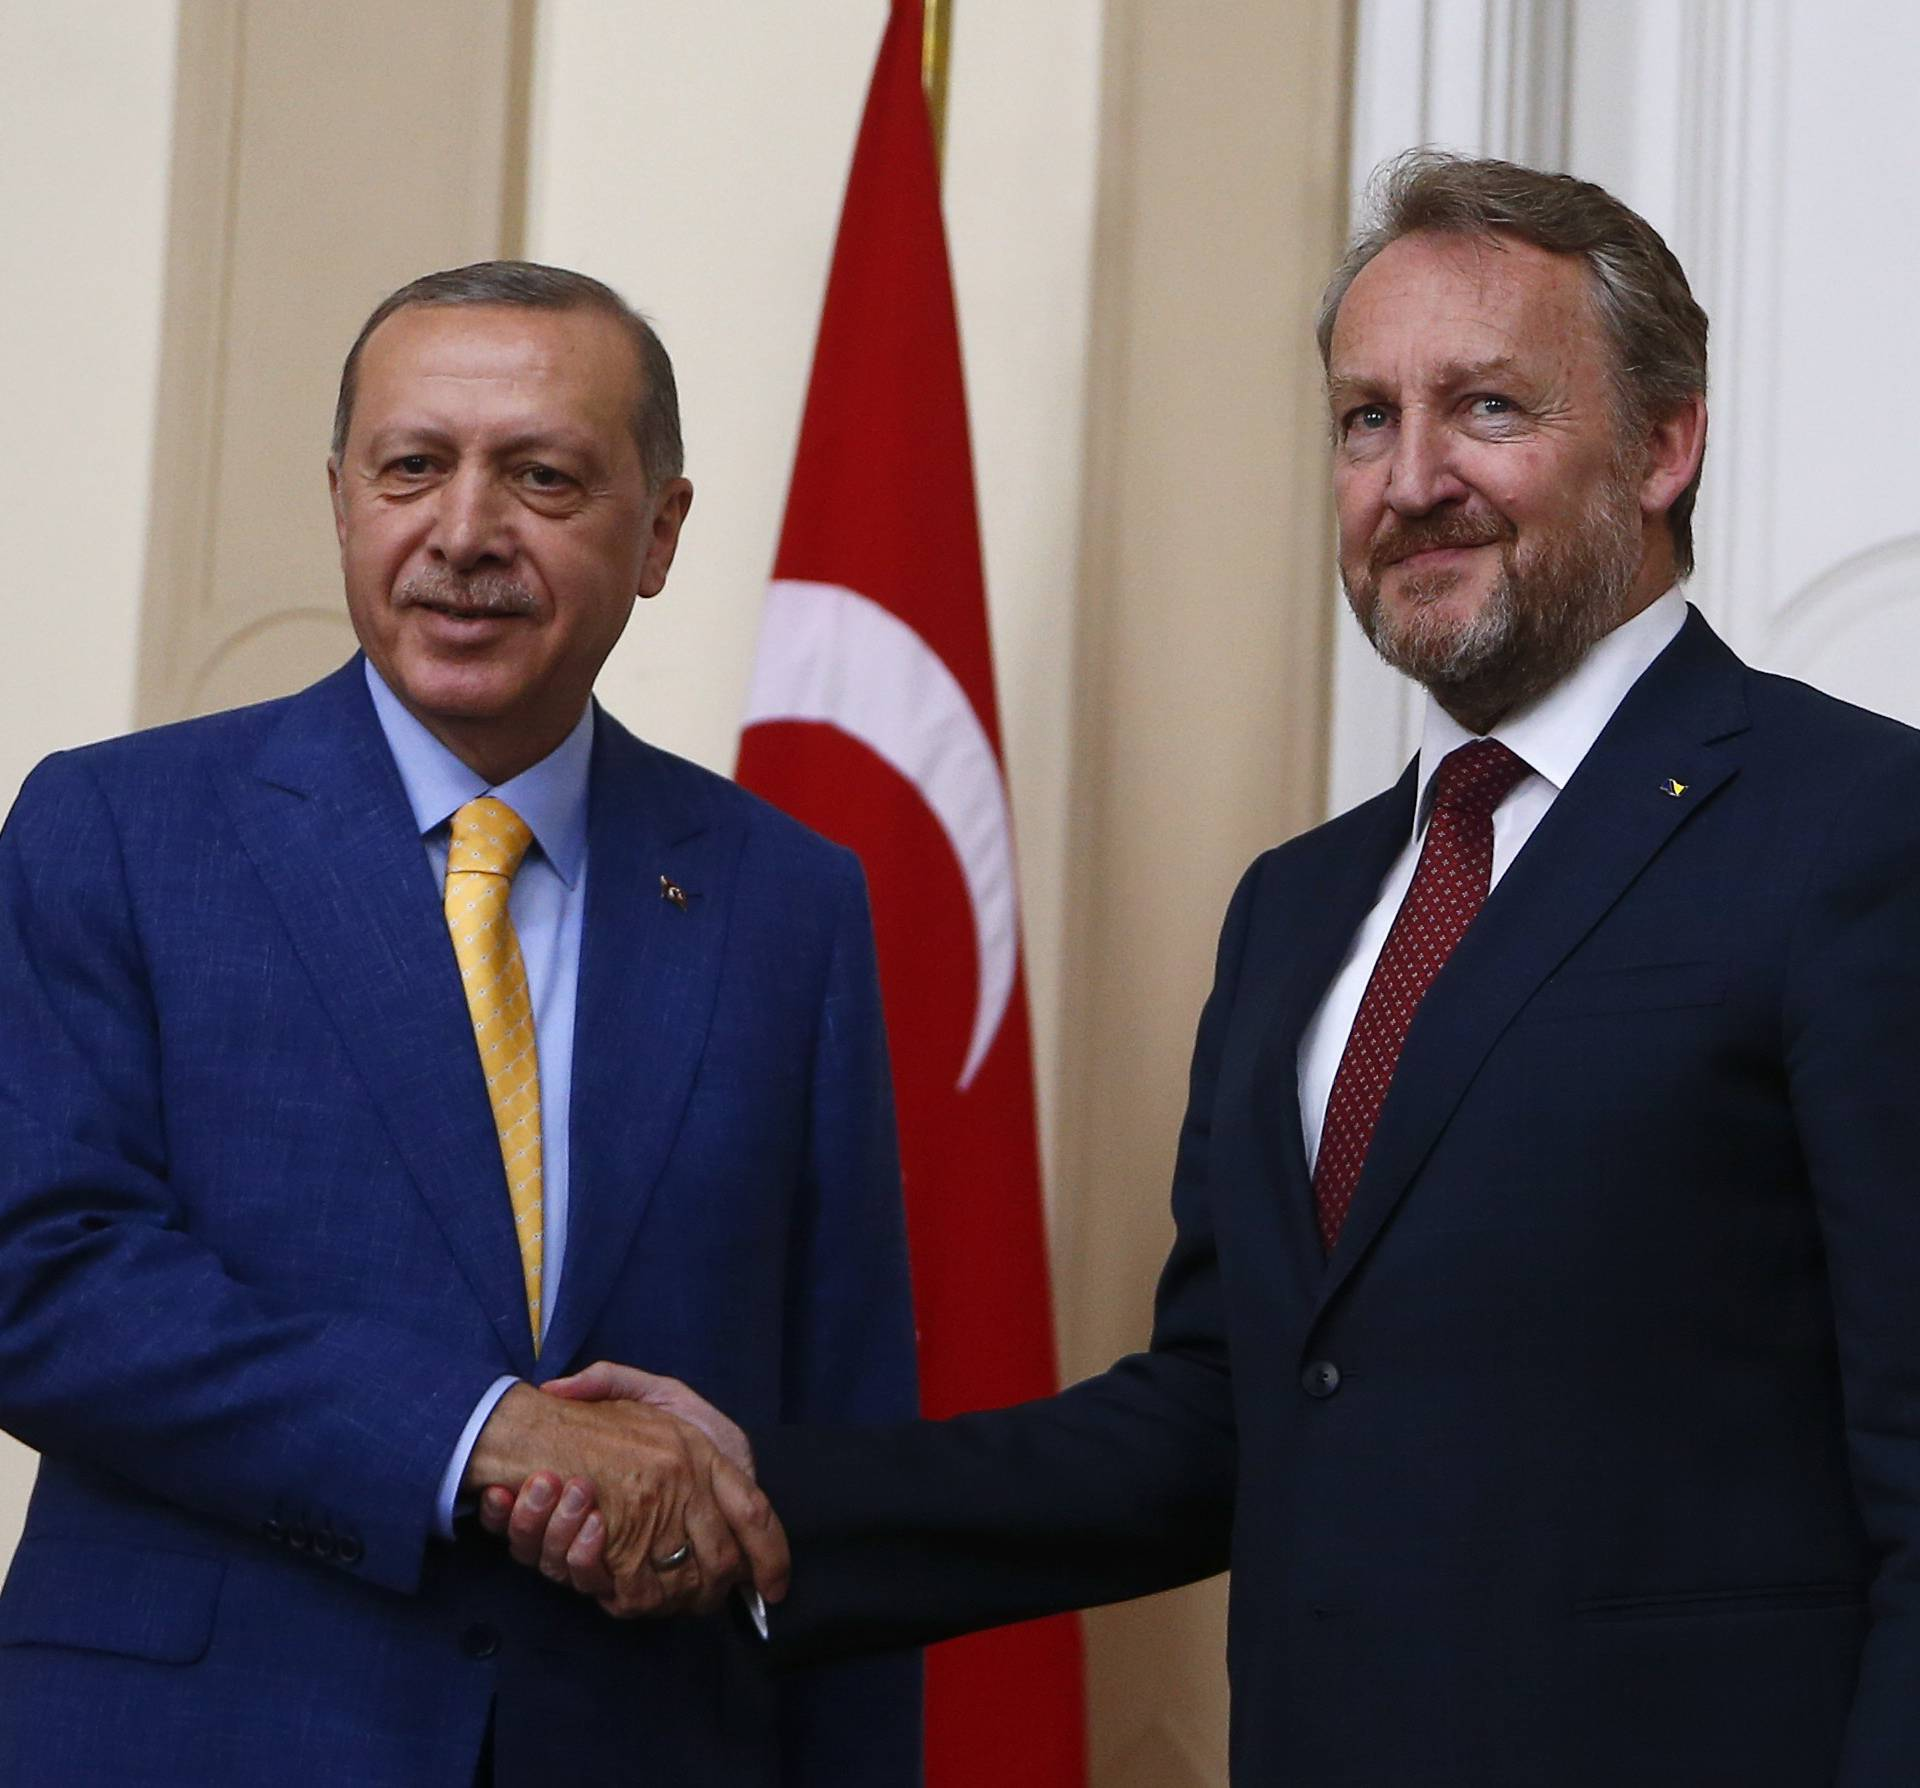 Turkish President Erdogan meets with Chairman of the Tripartite Presidency of Bosnia and Herzegovina Izetbegovic in Sarajevo